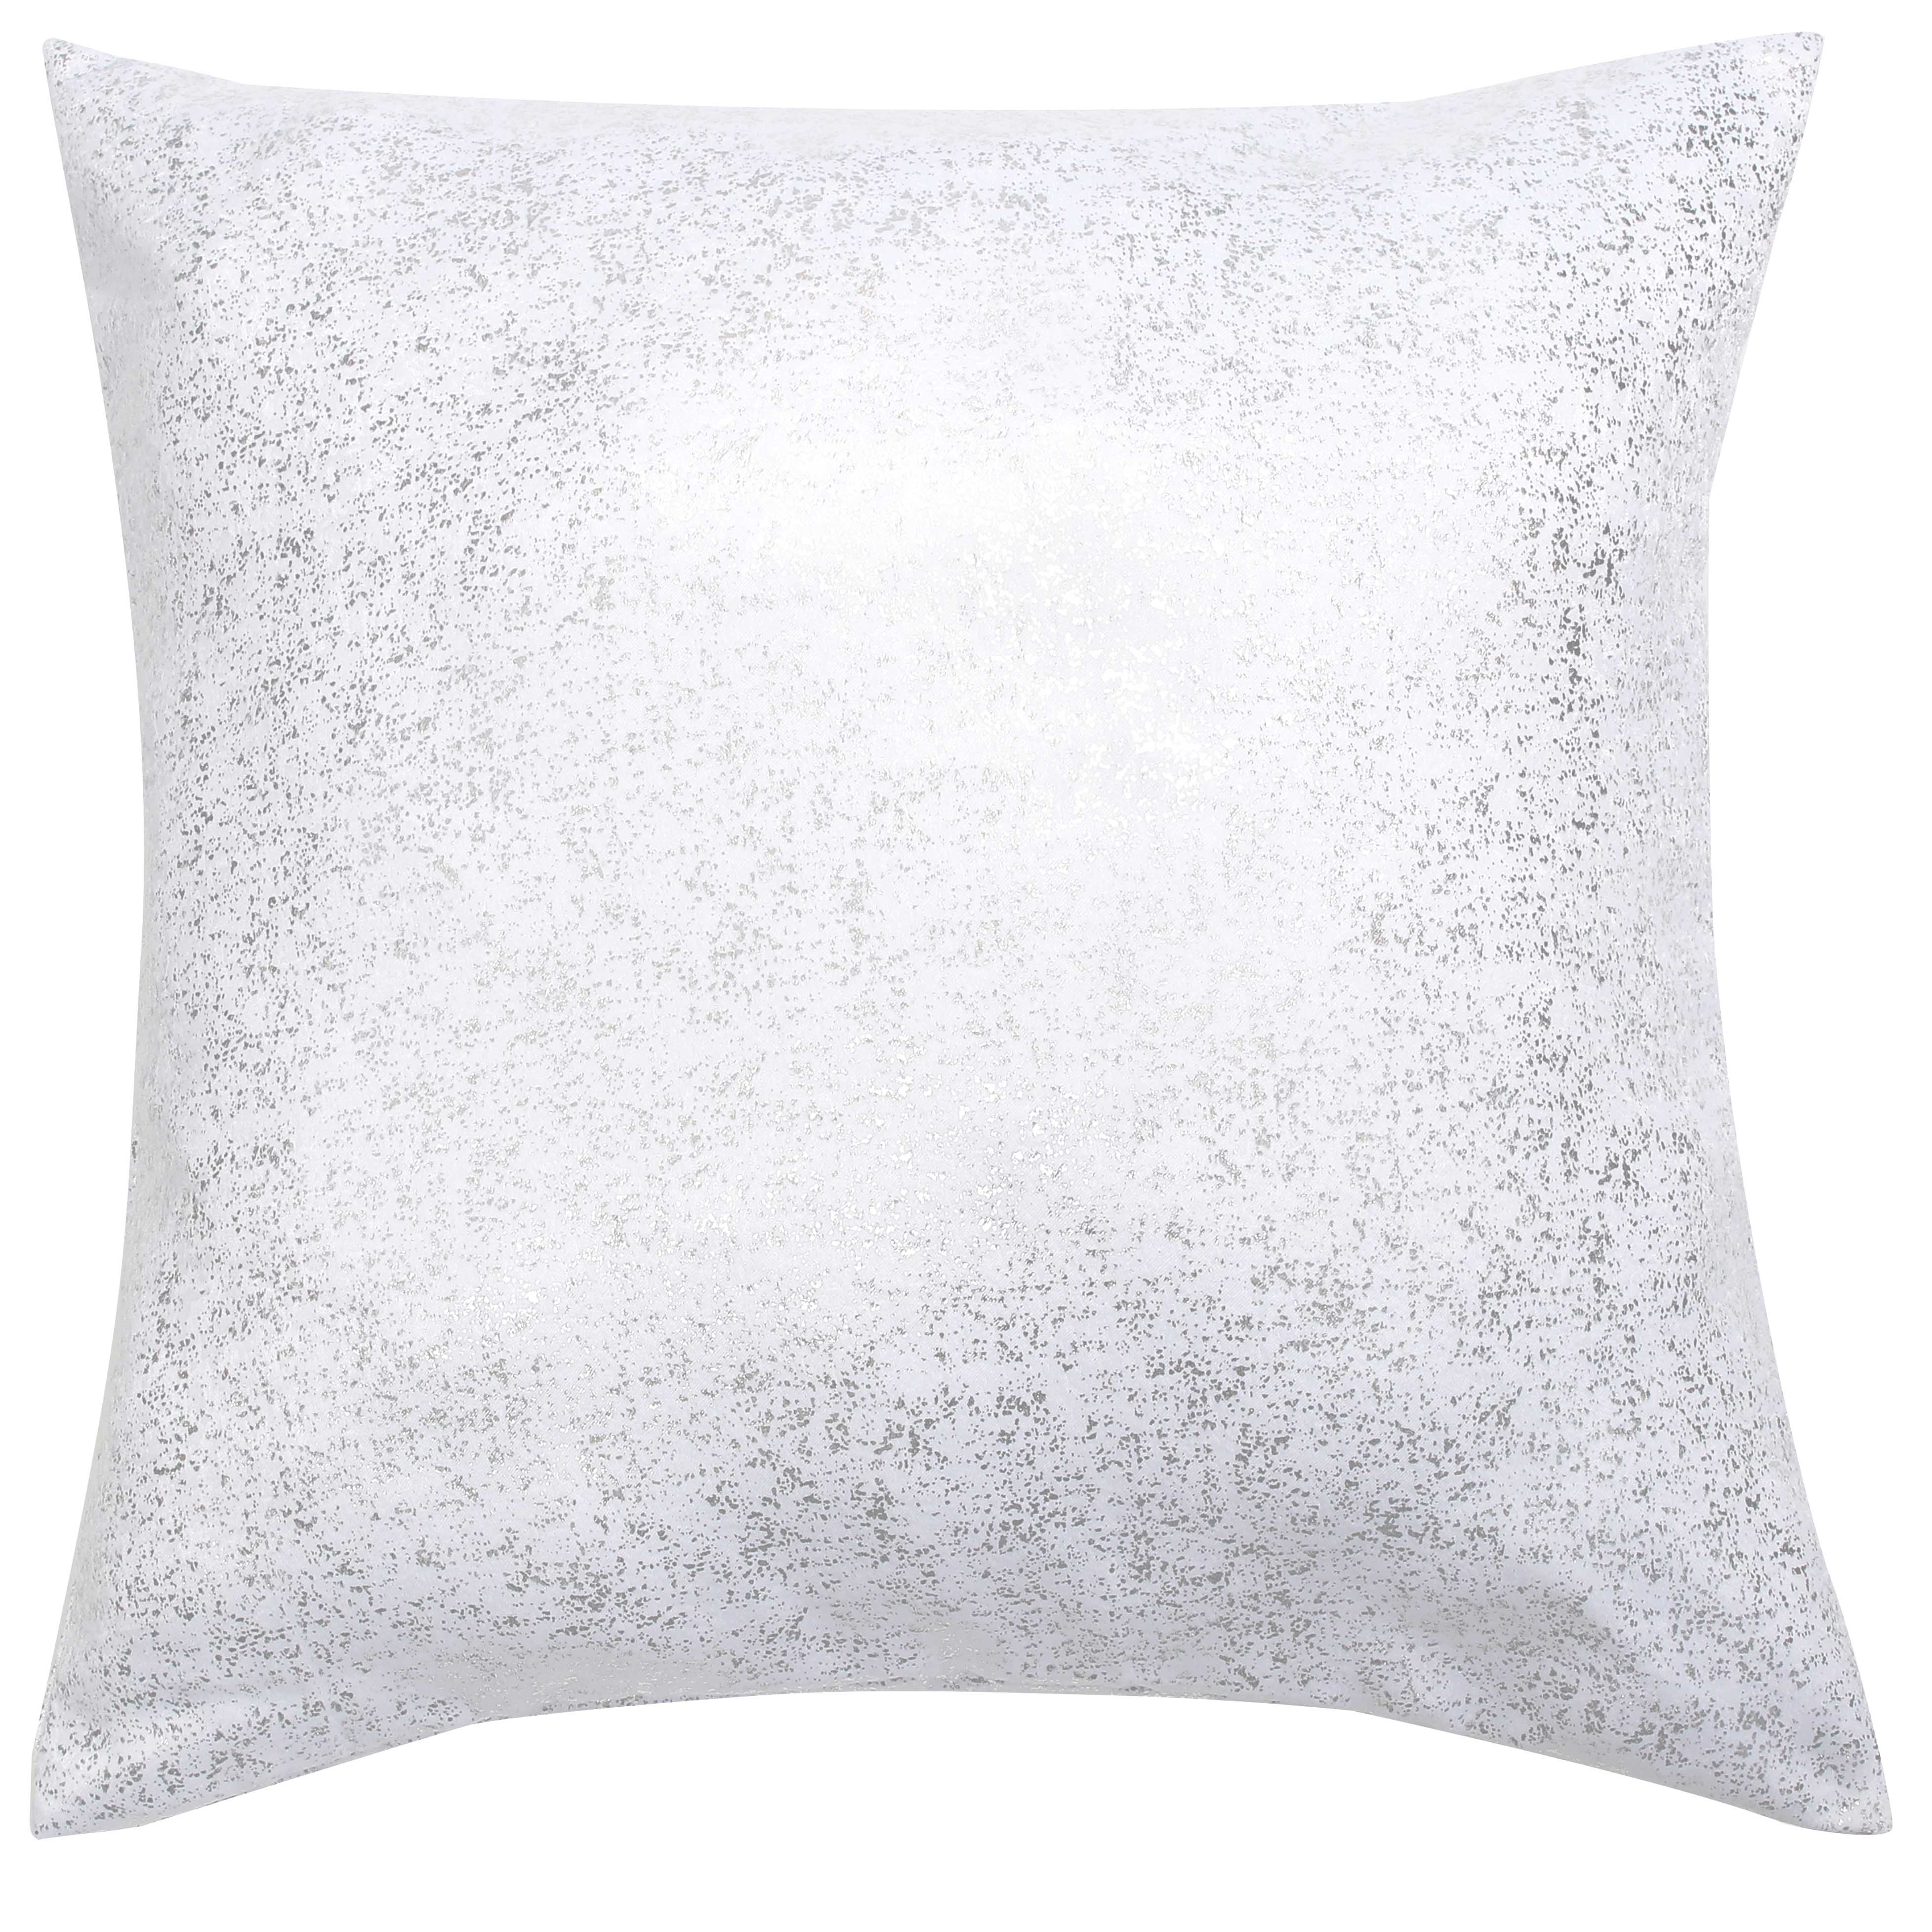 Ebay 1 Euro Details About White Single 1 Euro Square Size Pillow Sham With Metallic Accent 26in X 26in